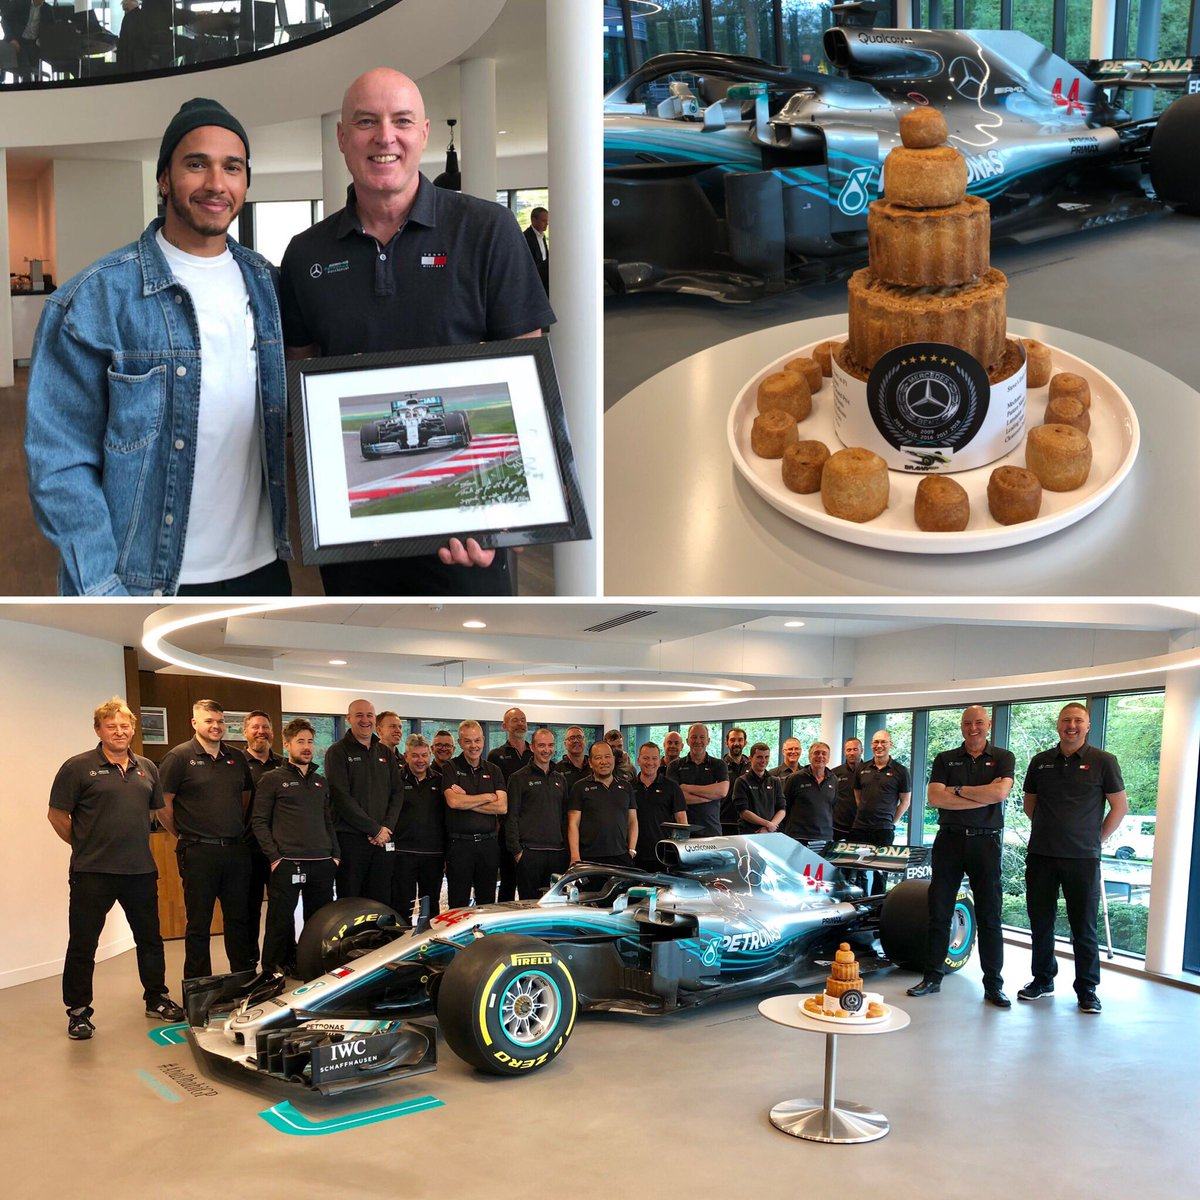 Early retirement beckons. 24 years in #F1 comes to an end  the boys and girls @MercedesAMGF1 gave me a fab send off. #Proud #Mercedes family taming the prancing Horses and energised Bulls. 6 #worldchampionships #StewartGP #JaguarRacing #BAR #HondaF1 #Brawn #MercedesAMGF1 – at Mercedes-Benz Grand Prix